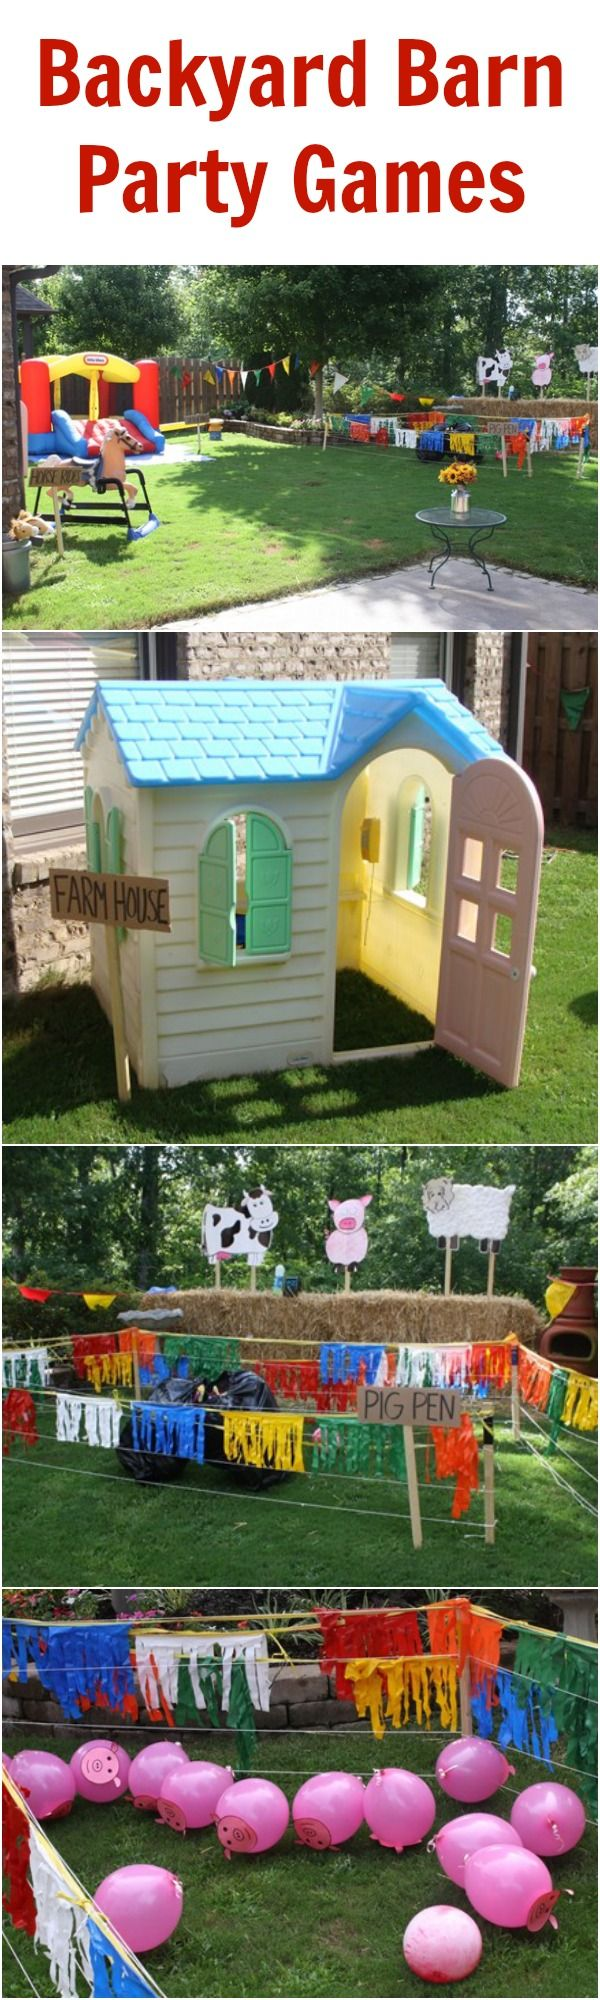 Backyard Barnyard Ideas on backyard bbq, backyard farming, backyard party, backyard bash, backyard fire, backyard beehive, backyard bounce,